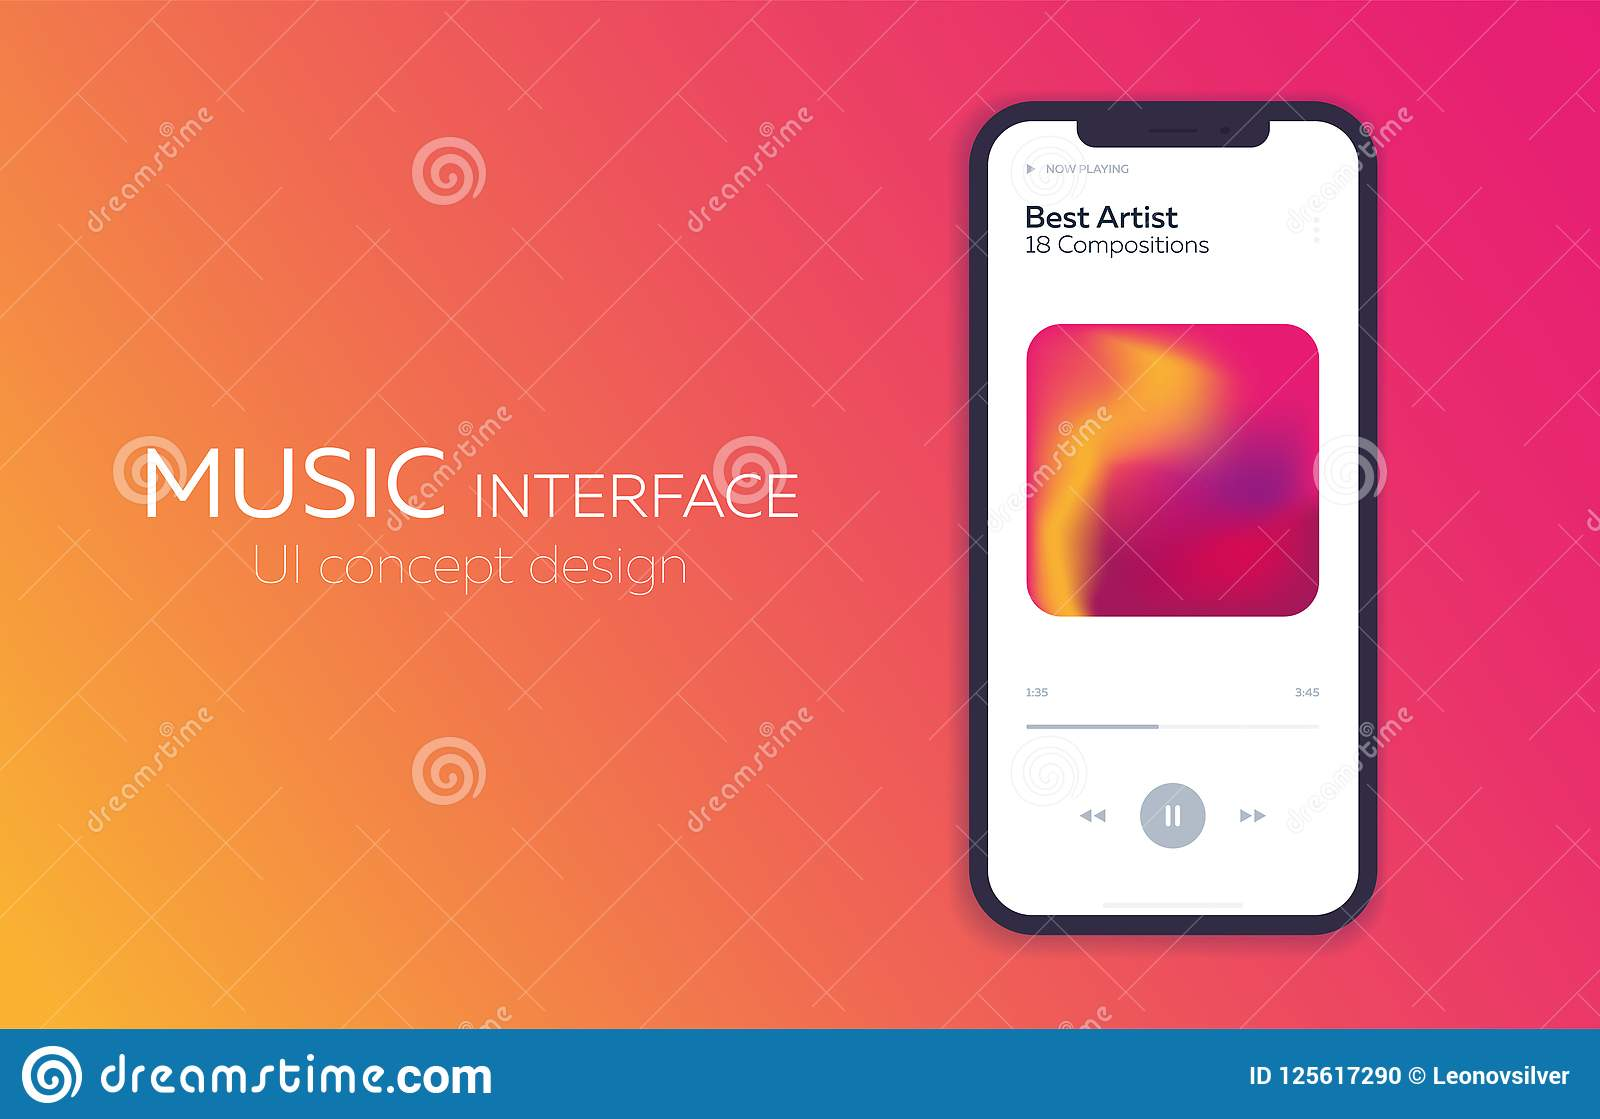 Mobile UI Design Concept  Music Player  Vector Illustration  Stock